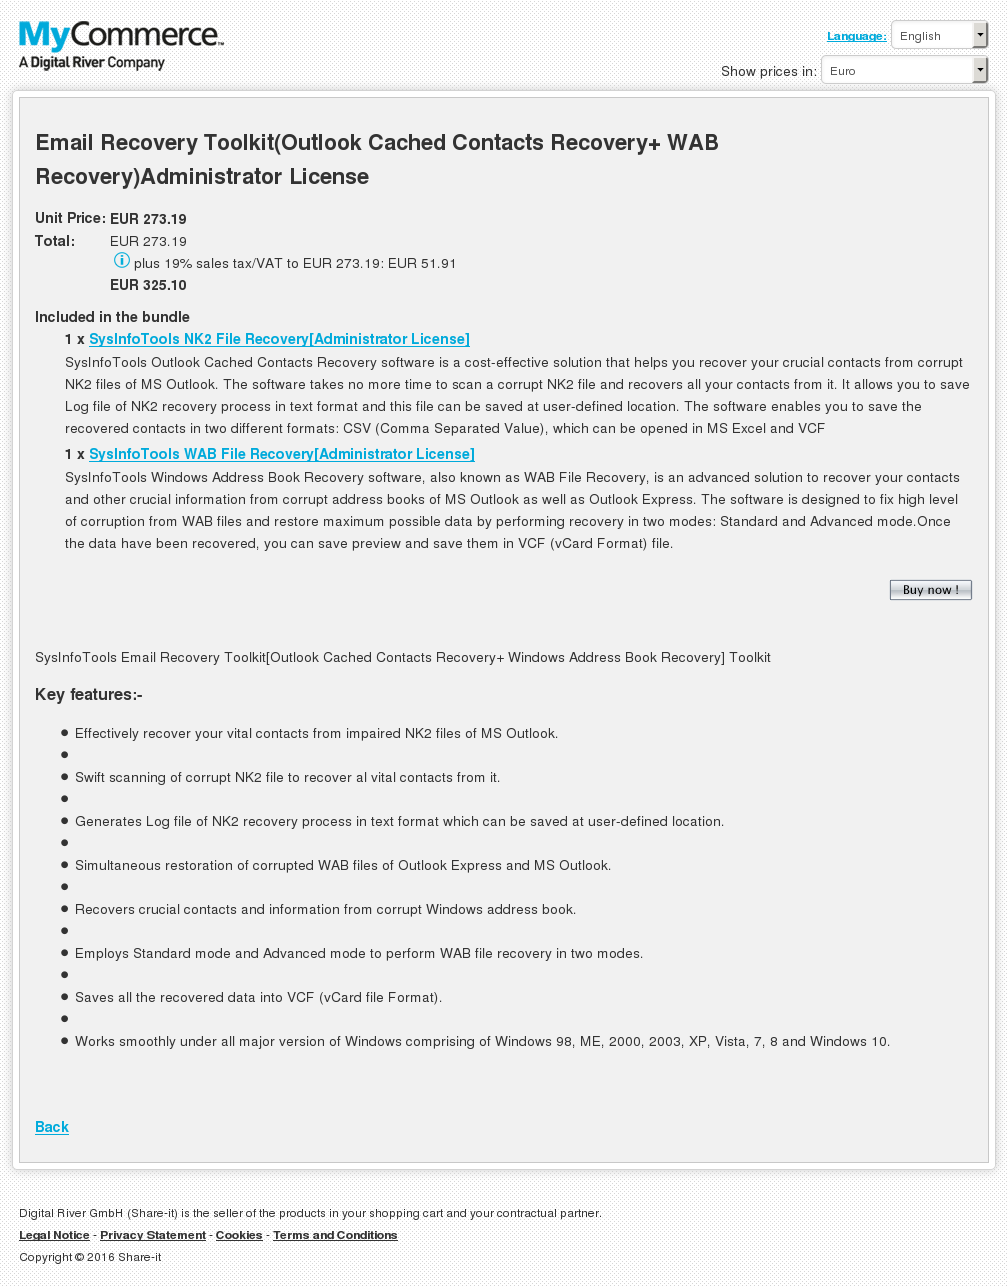 Email Recovery Toolkit Outlook Cached Contacts Wab Administrator License Download